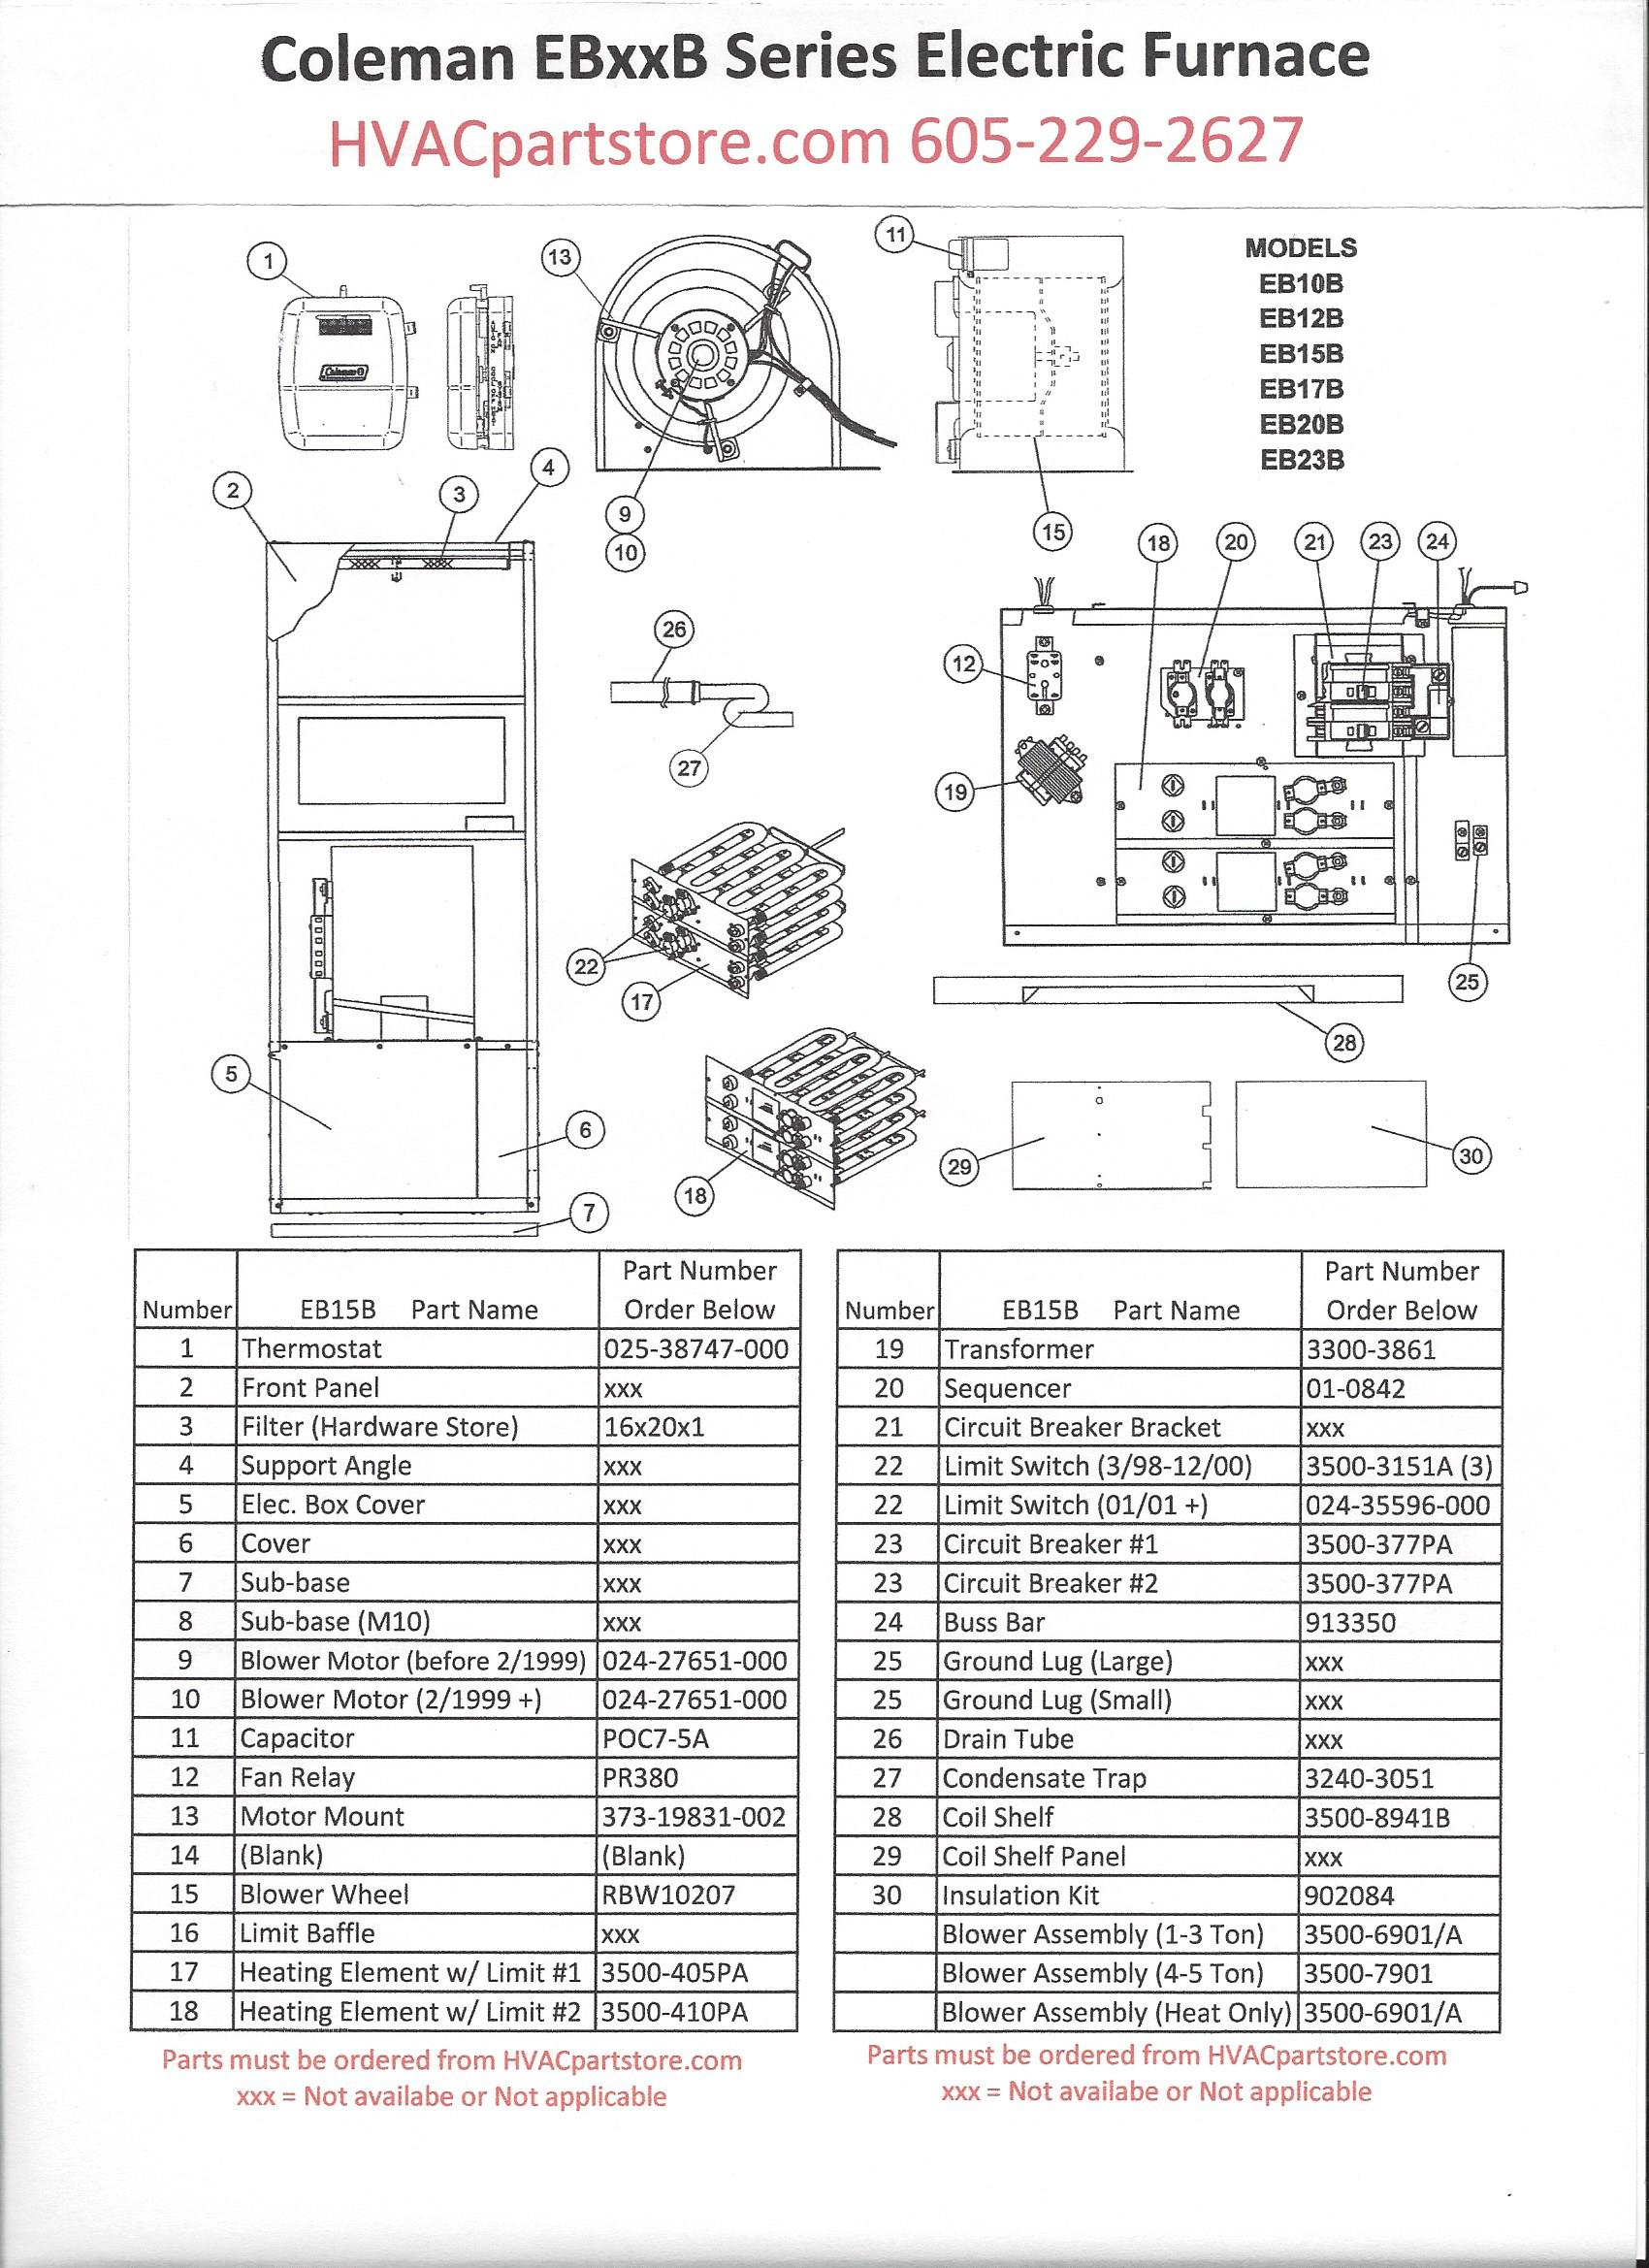 Coleman Evcon Wiring Diagram Back - Wiring Diagram Work on